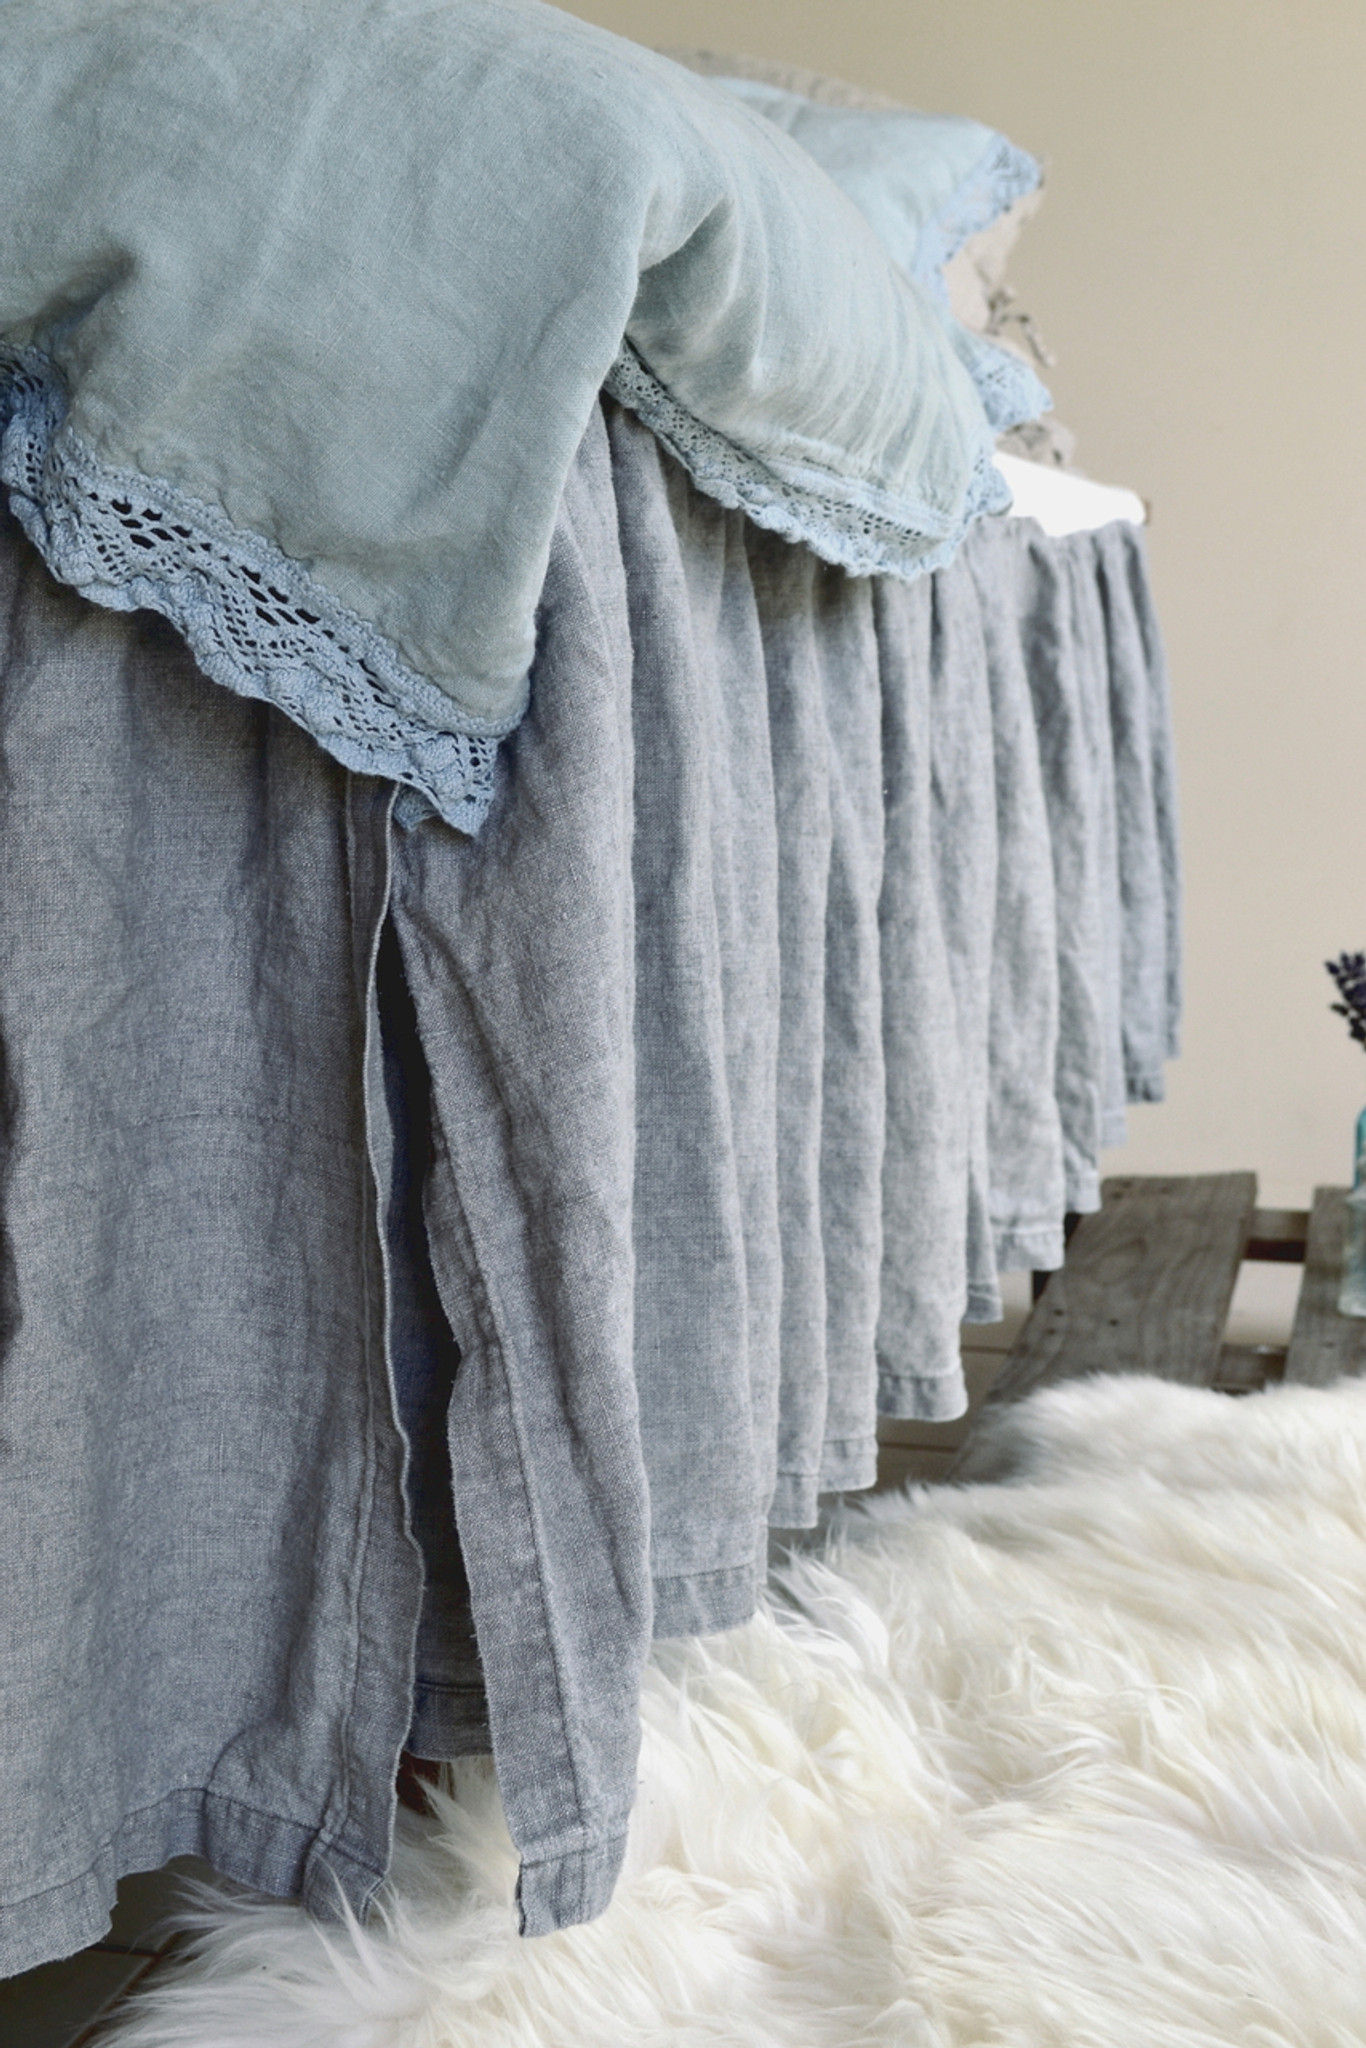 Dove Grey Heavy Weight Rustic Linen Bed Skirt Dust Ruffle Valance